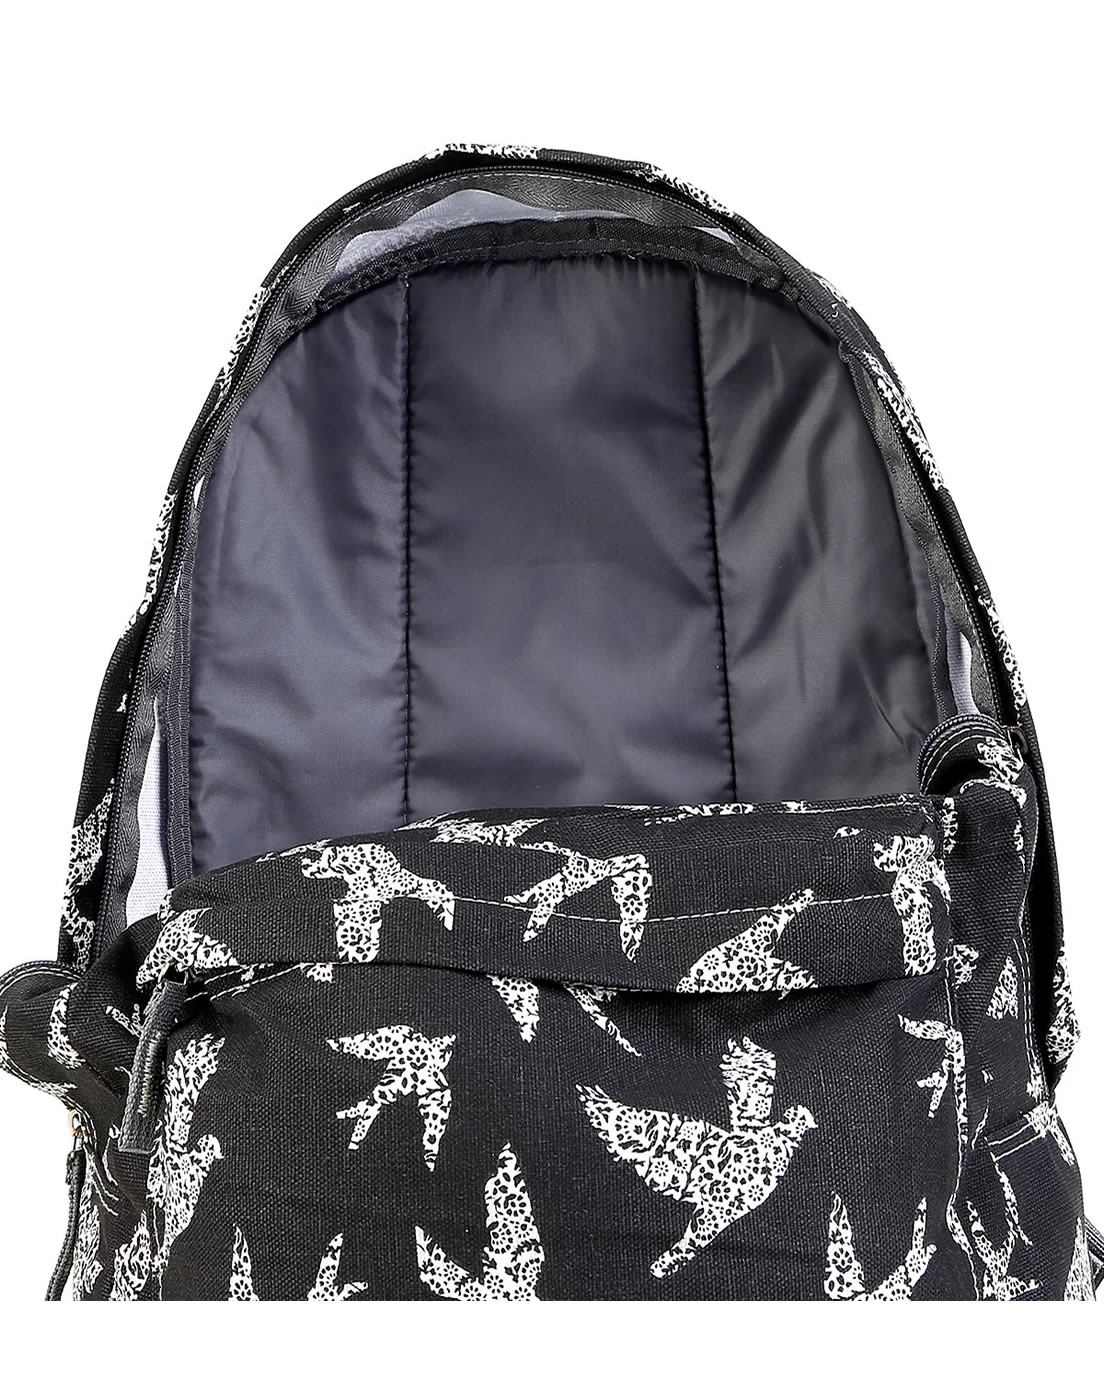 Mochila de Costas Casual Estampada Republic Vix Preto